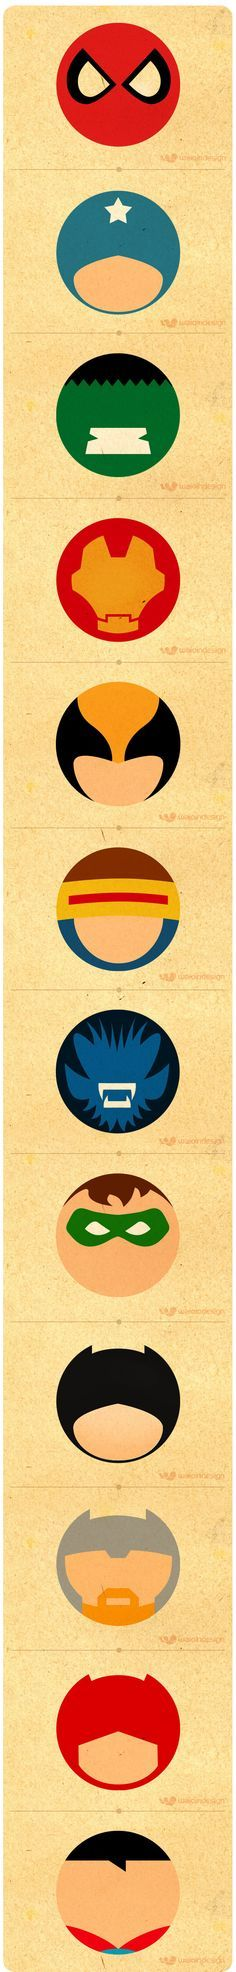 Super Heróis - Minimalismo by Waio , via Behance